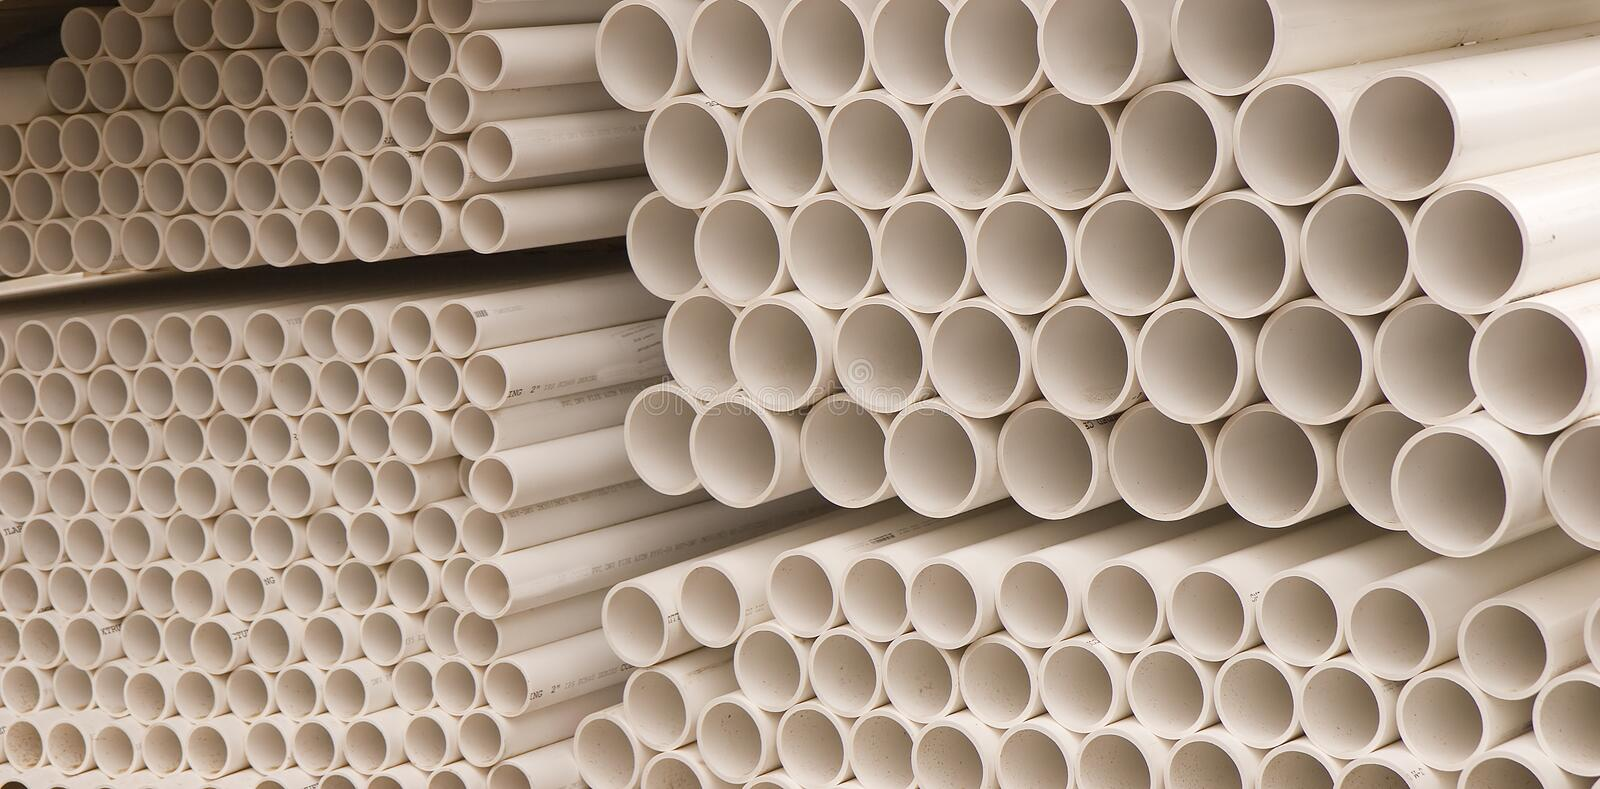 Pipes de PVC image stock